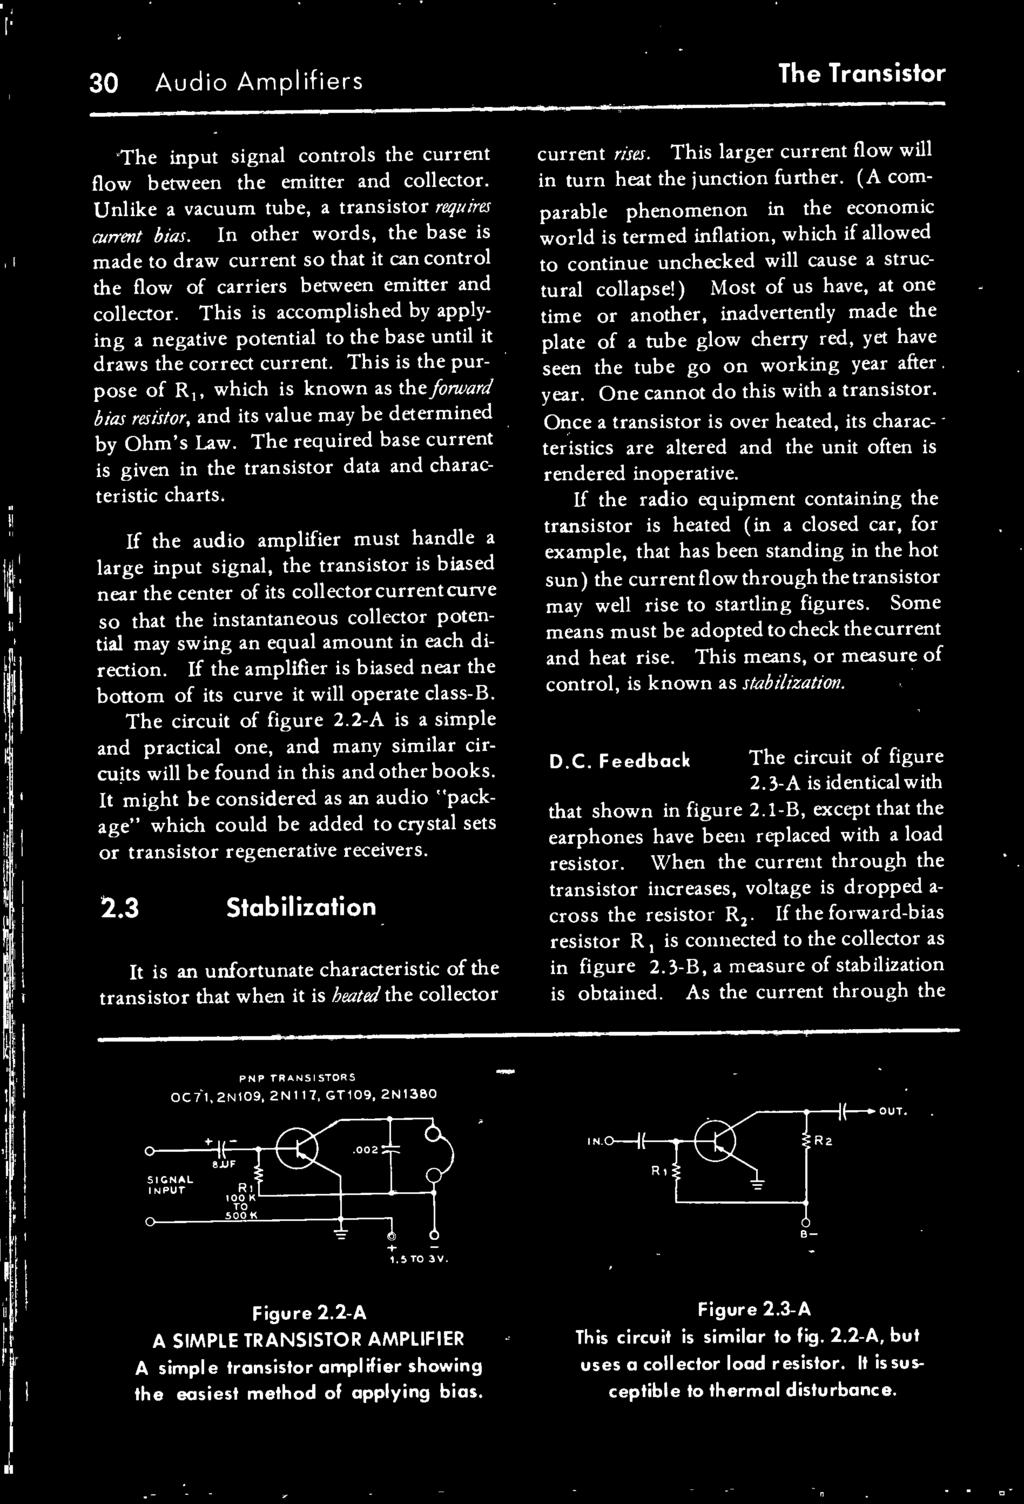 The Transistor Radio Handbook Theory Circuitry Equipment Pdf Simple As An Amplifier Required Base Current Is Given In Data And Characteristic Charts